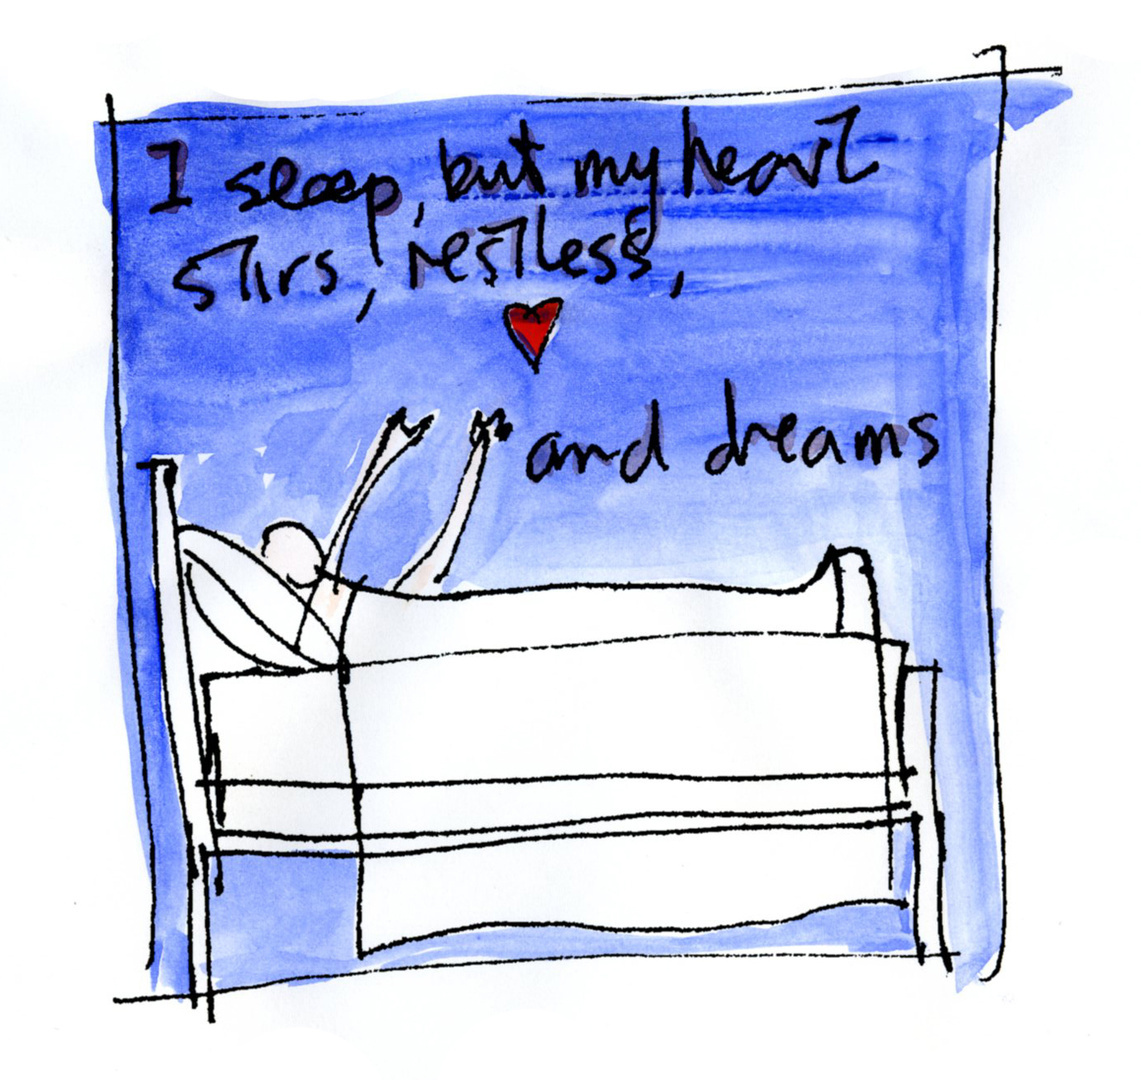 I sleep, but my heart stirs, restless, and dreams.